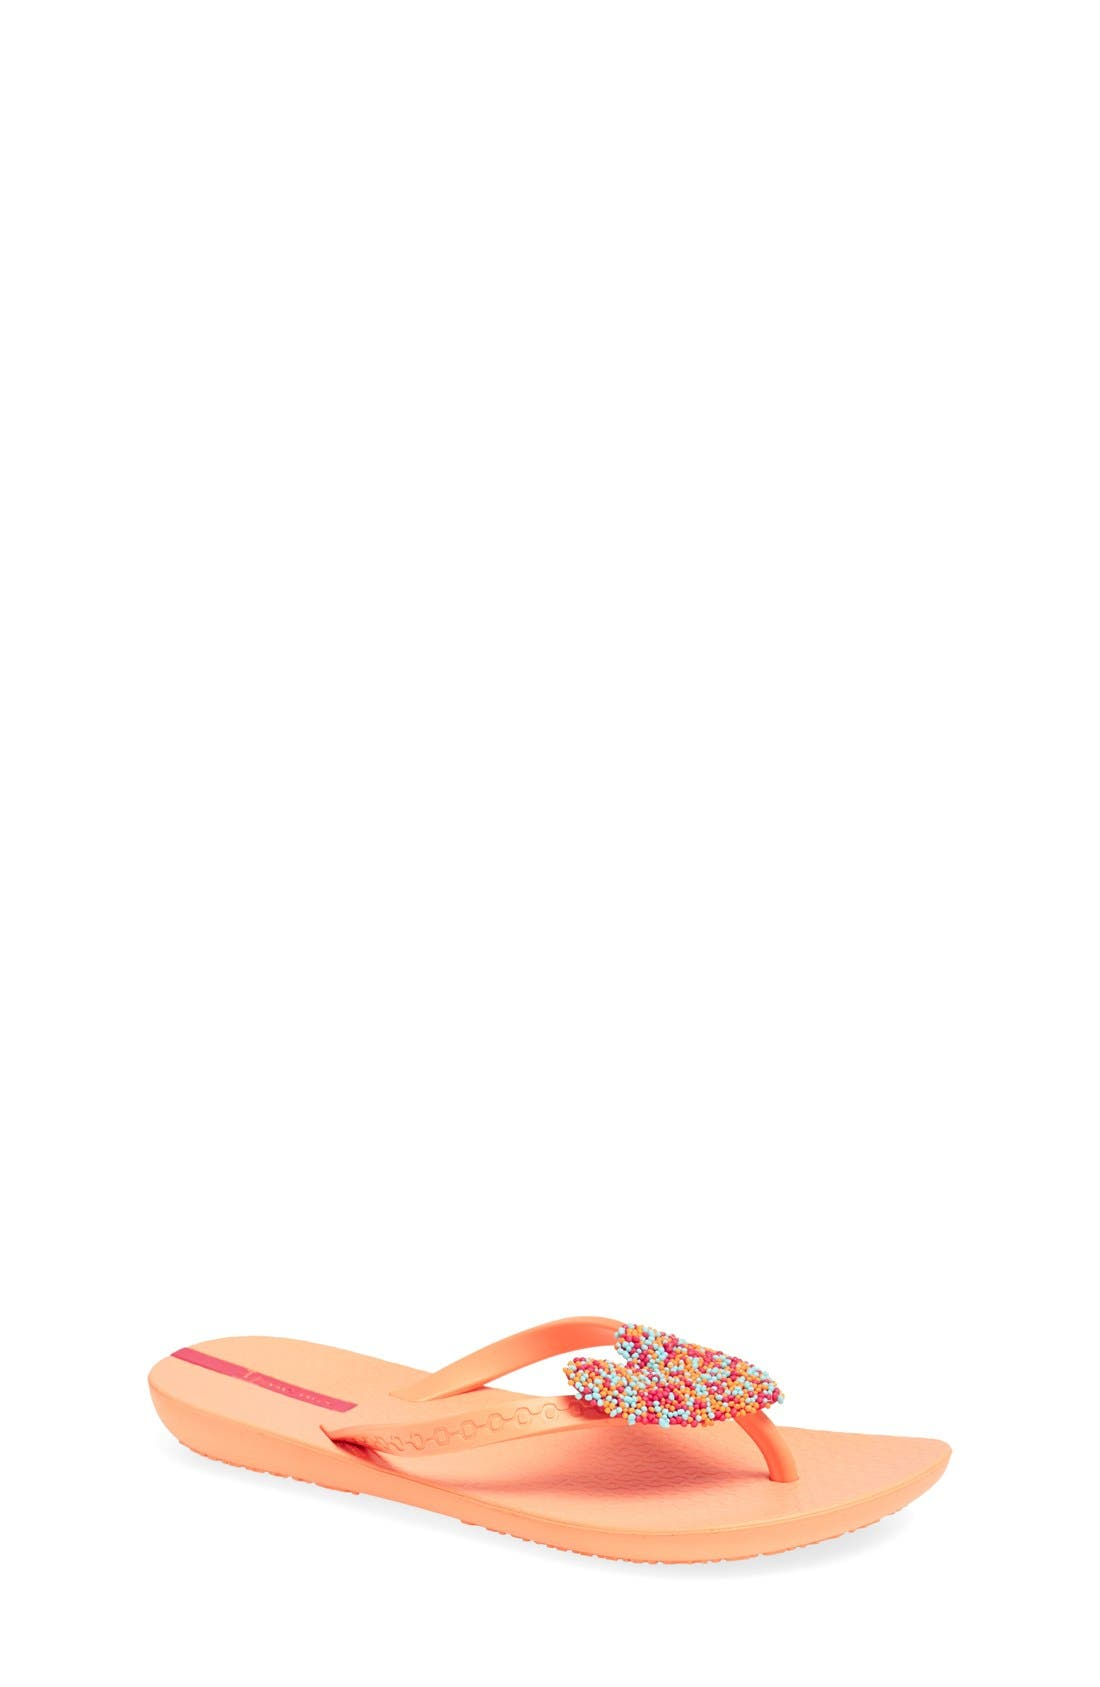 Alternate Image 1 Selected - Ipanema 'Summer Love' Flip Flop (Toddler & Little Kid)